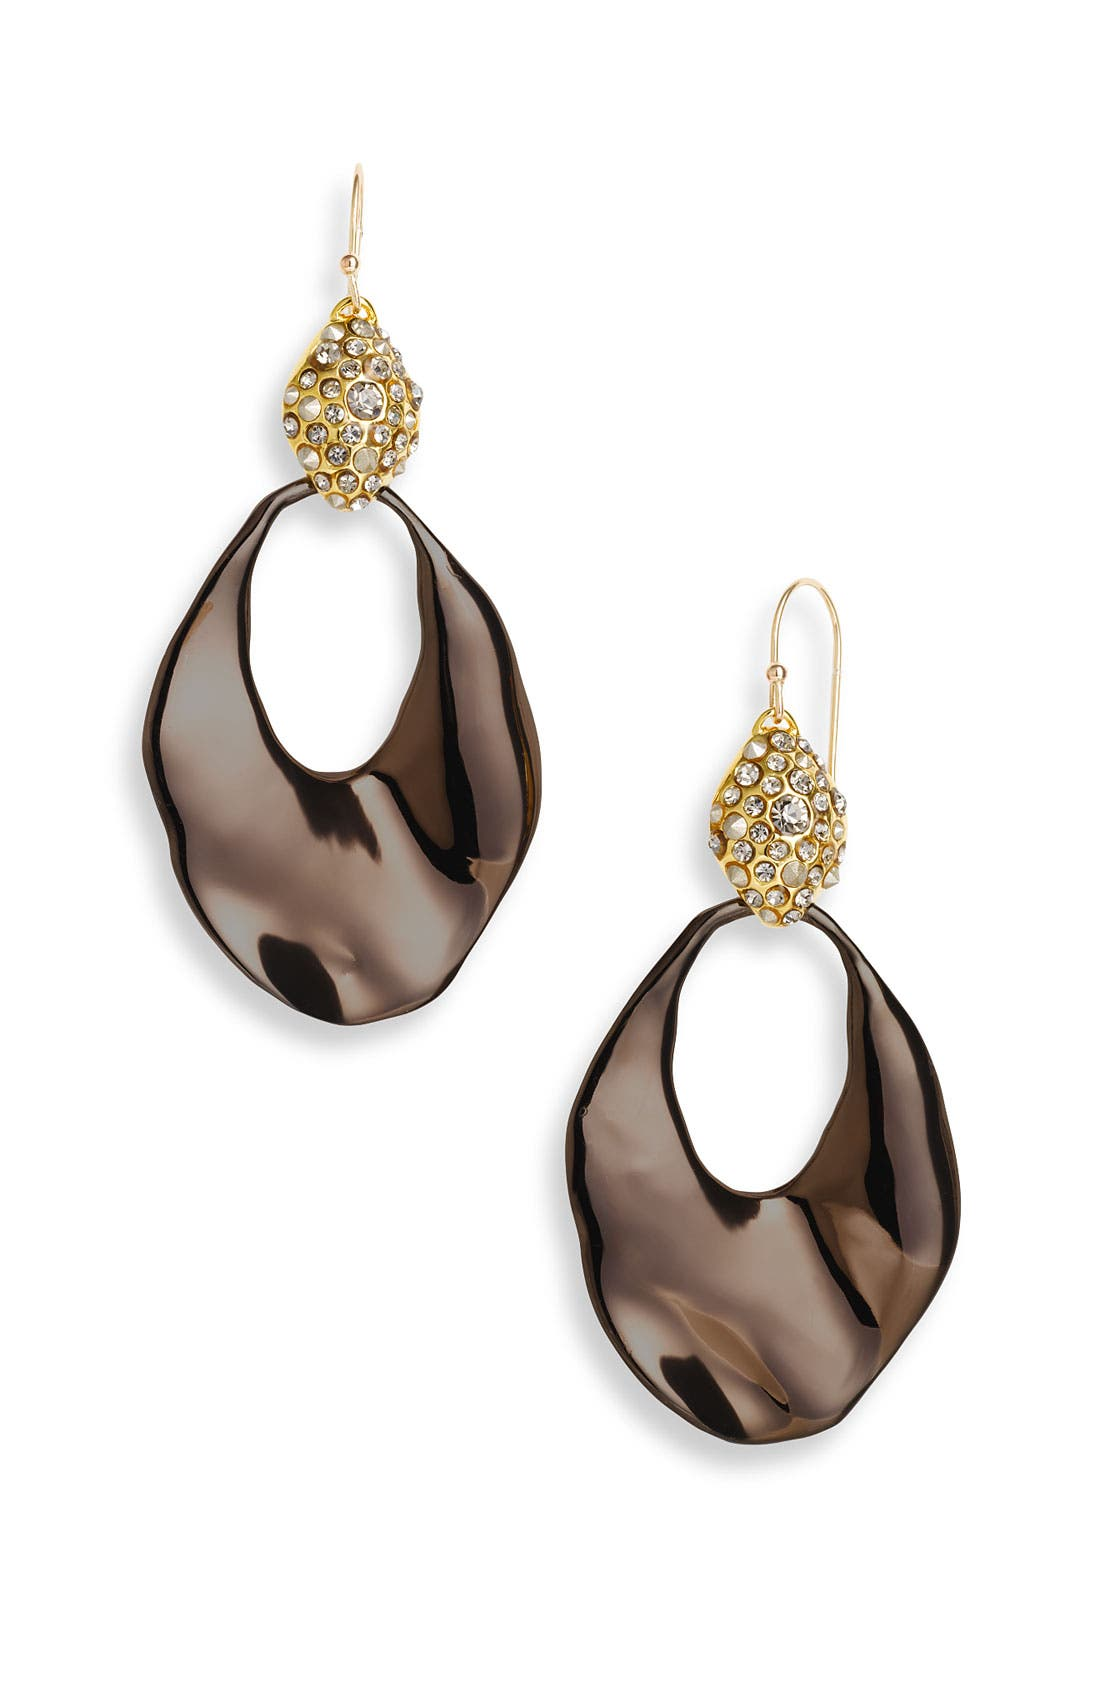 Alternate Image 1 Selected - Alexis Bittar 'Miss Havisham' Wavy Crystal Drop Earrings (Nordstrom Exclusive)